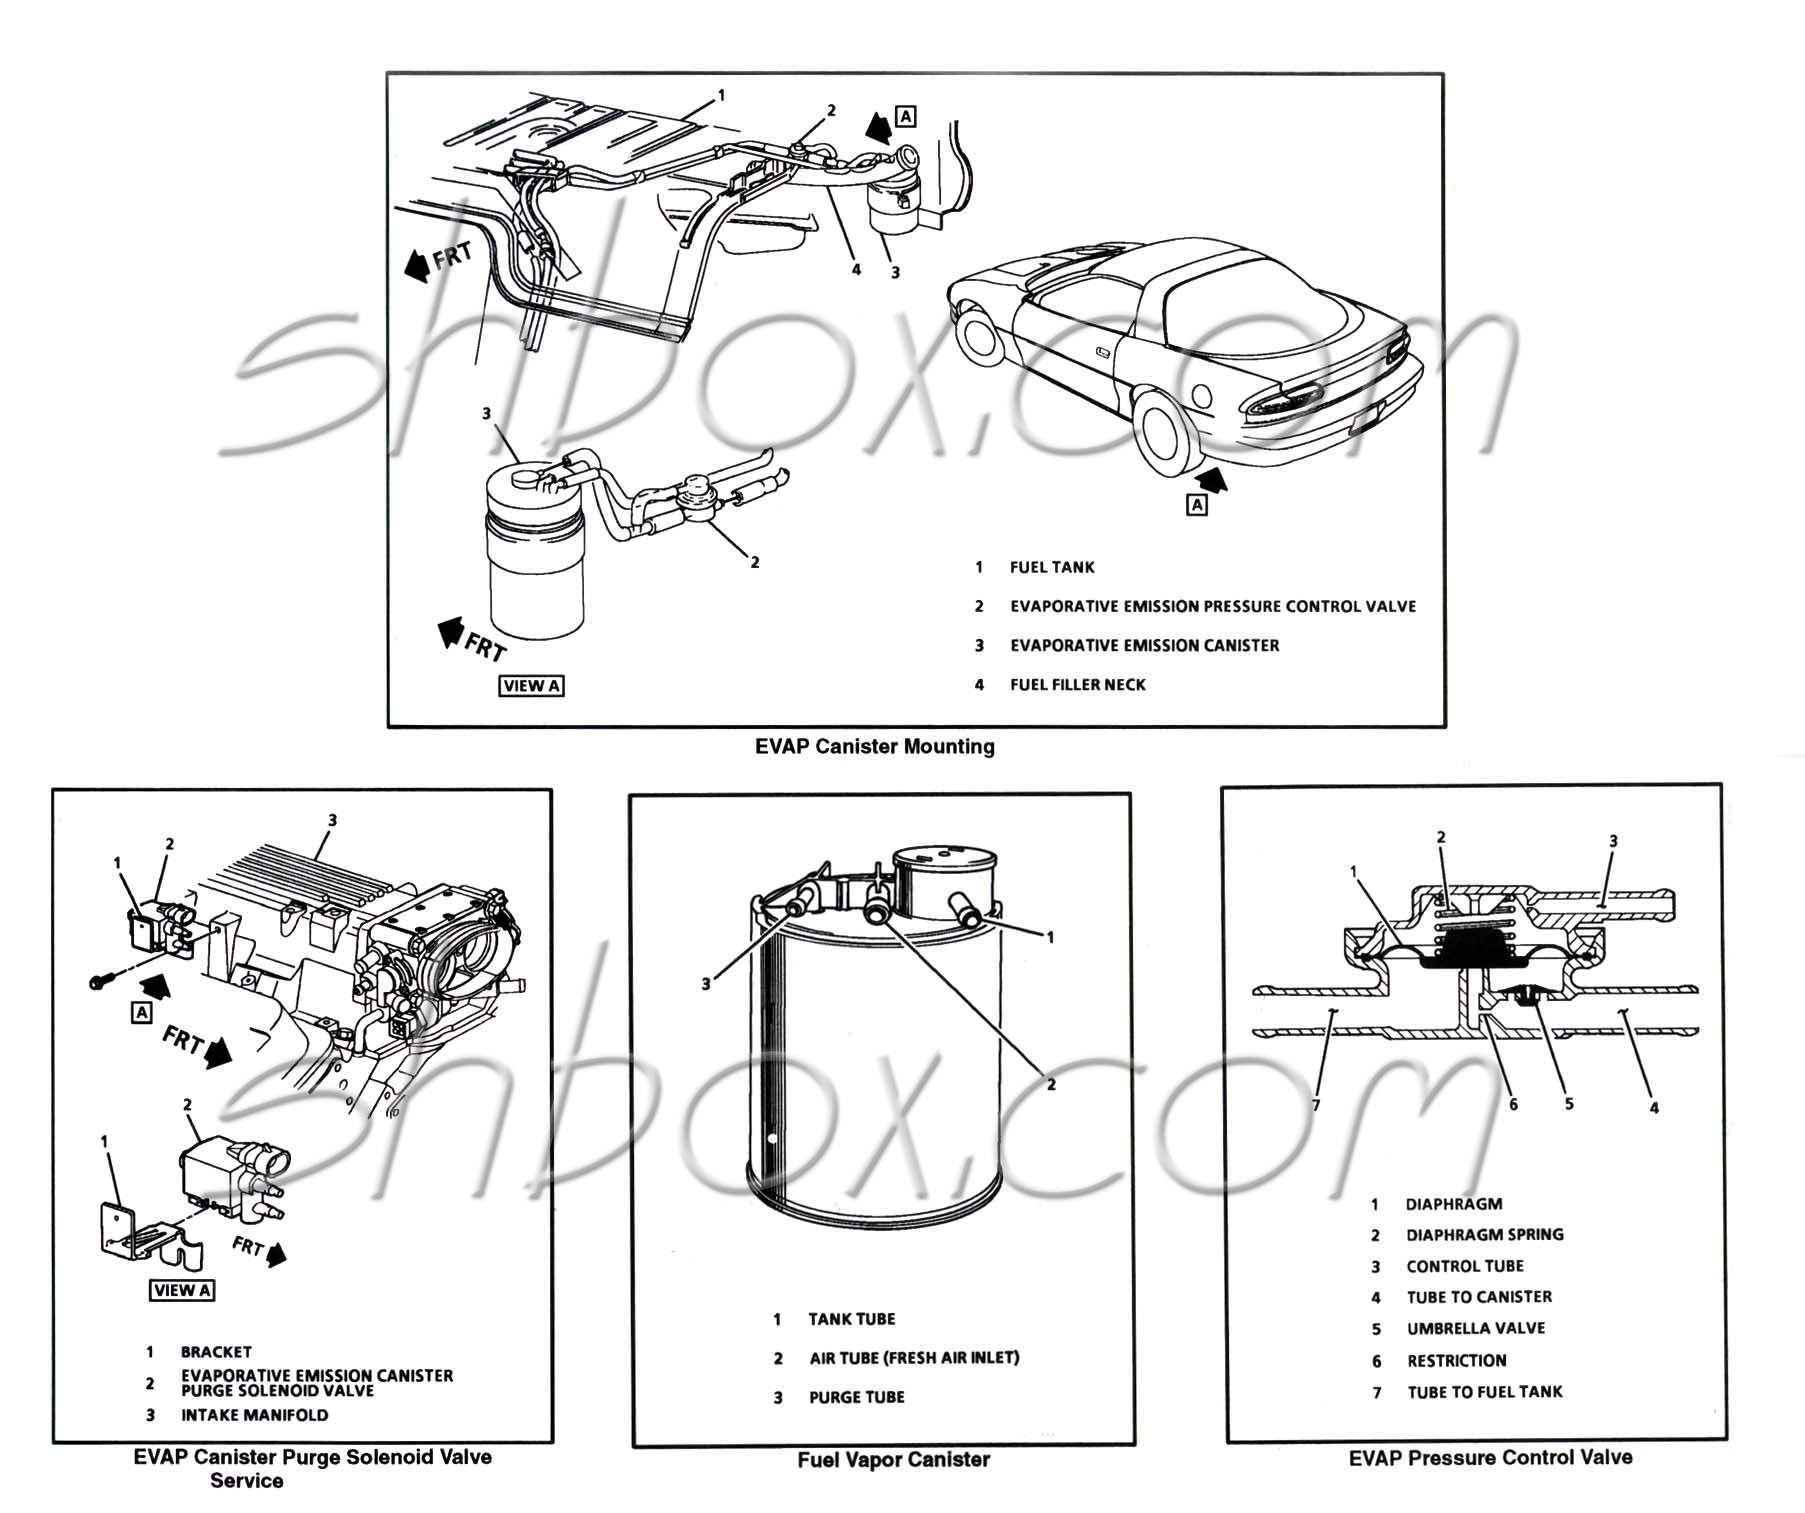 Chevy Impala Fuel Lines Diagram Free Engine